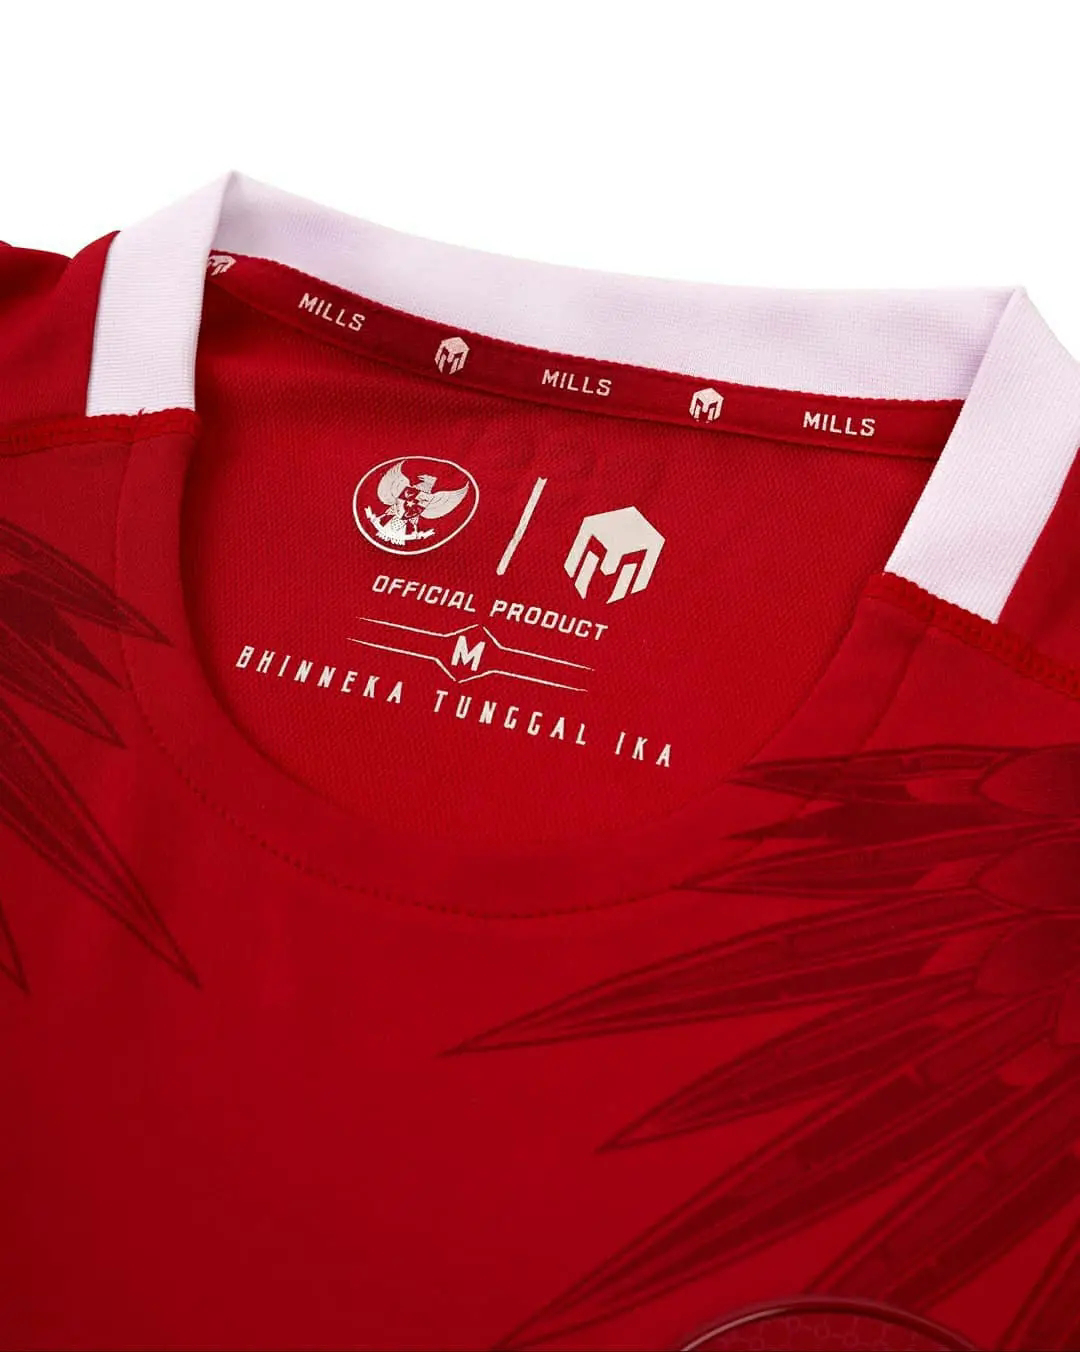 Jersey timnas Indonesia 2020 x mills